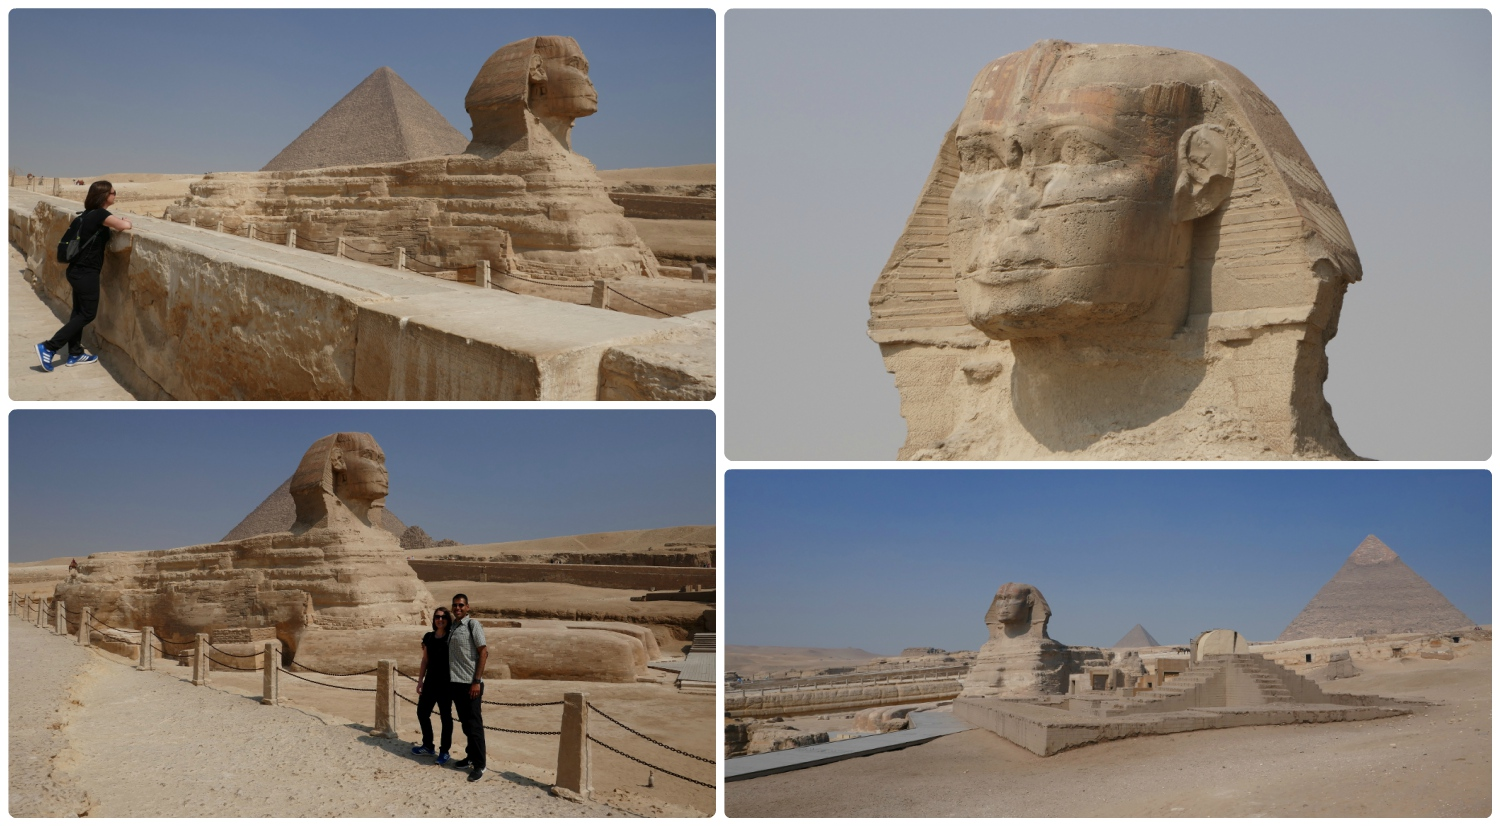 Seeing the Sphinx for the first time was an amazing experience. We were lucky enough to see it with almost no one else around.